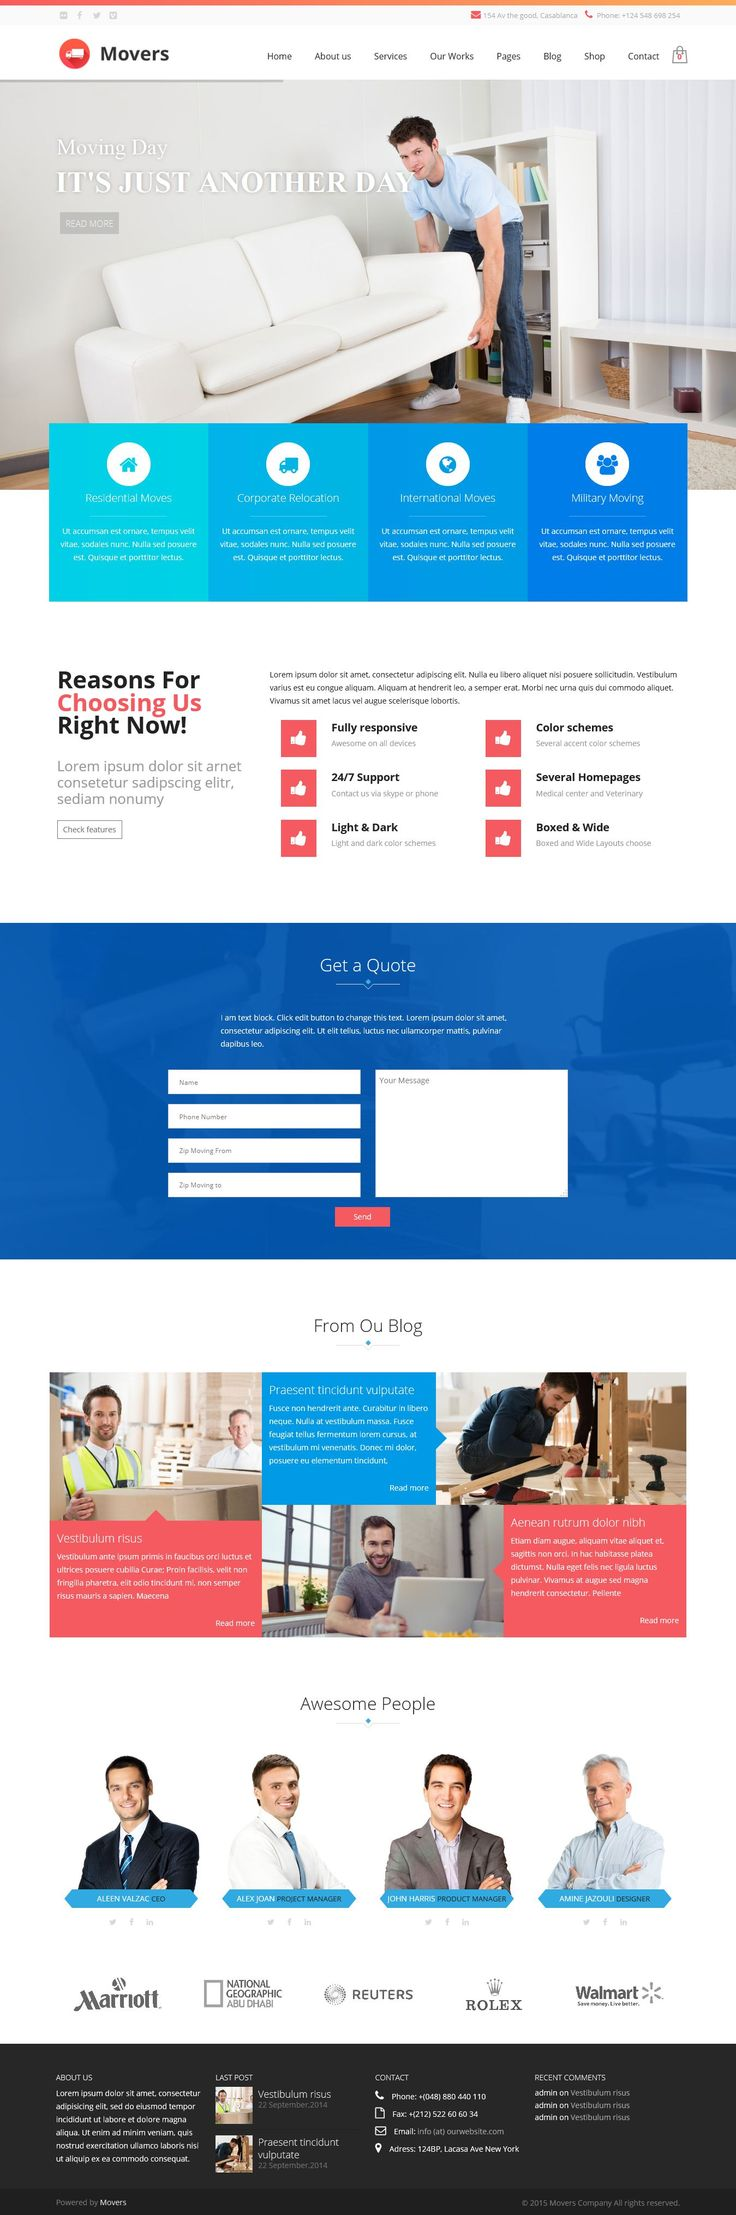 Mover is a theme for moving company, fully responsive #WordPress theme. The Theme is powered by #Zurb Foundation Framework and can be a base for any kind of #website project.